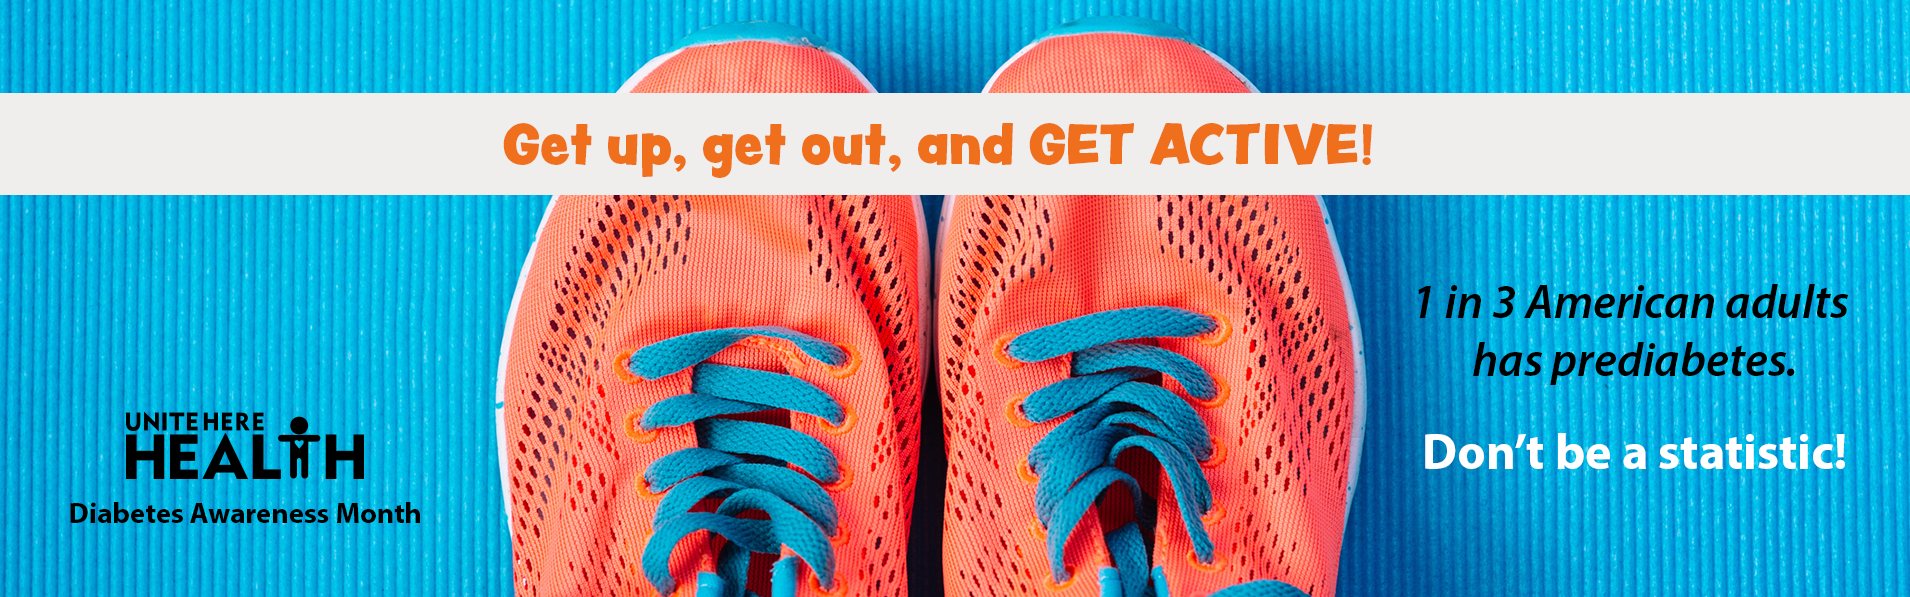 Diabetes Awareness Month - Get Active